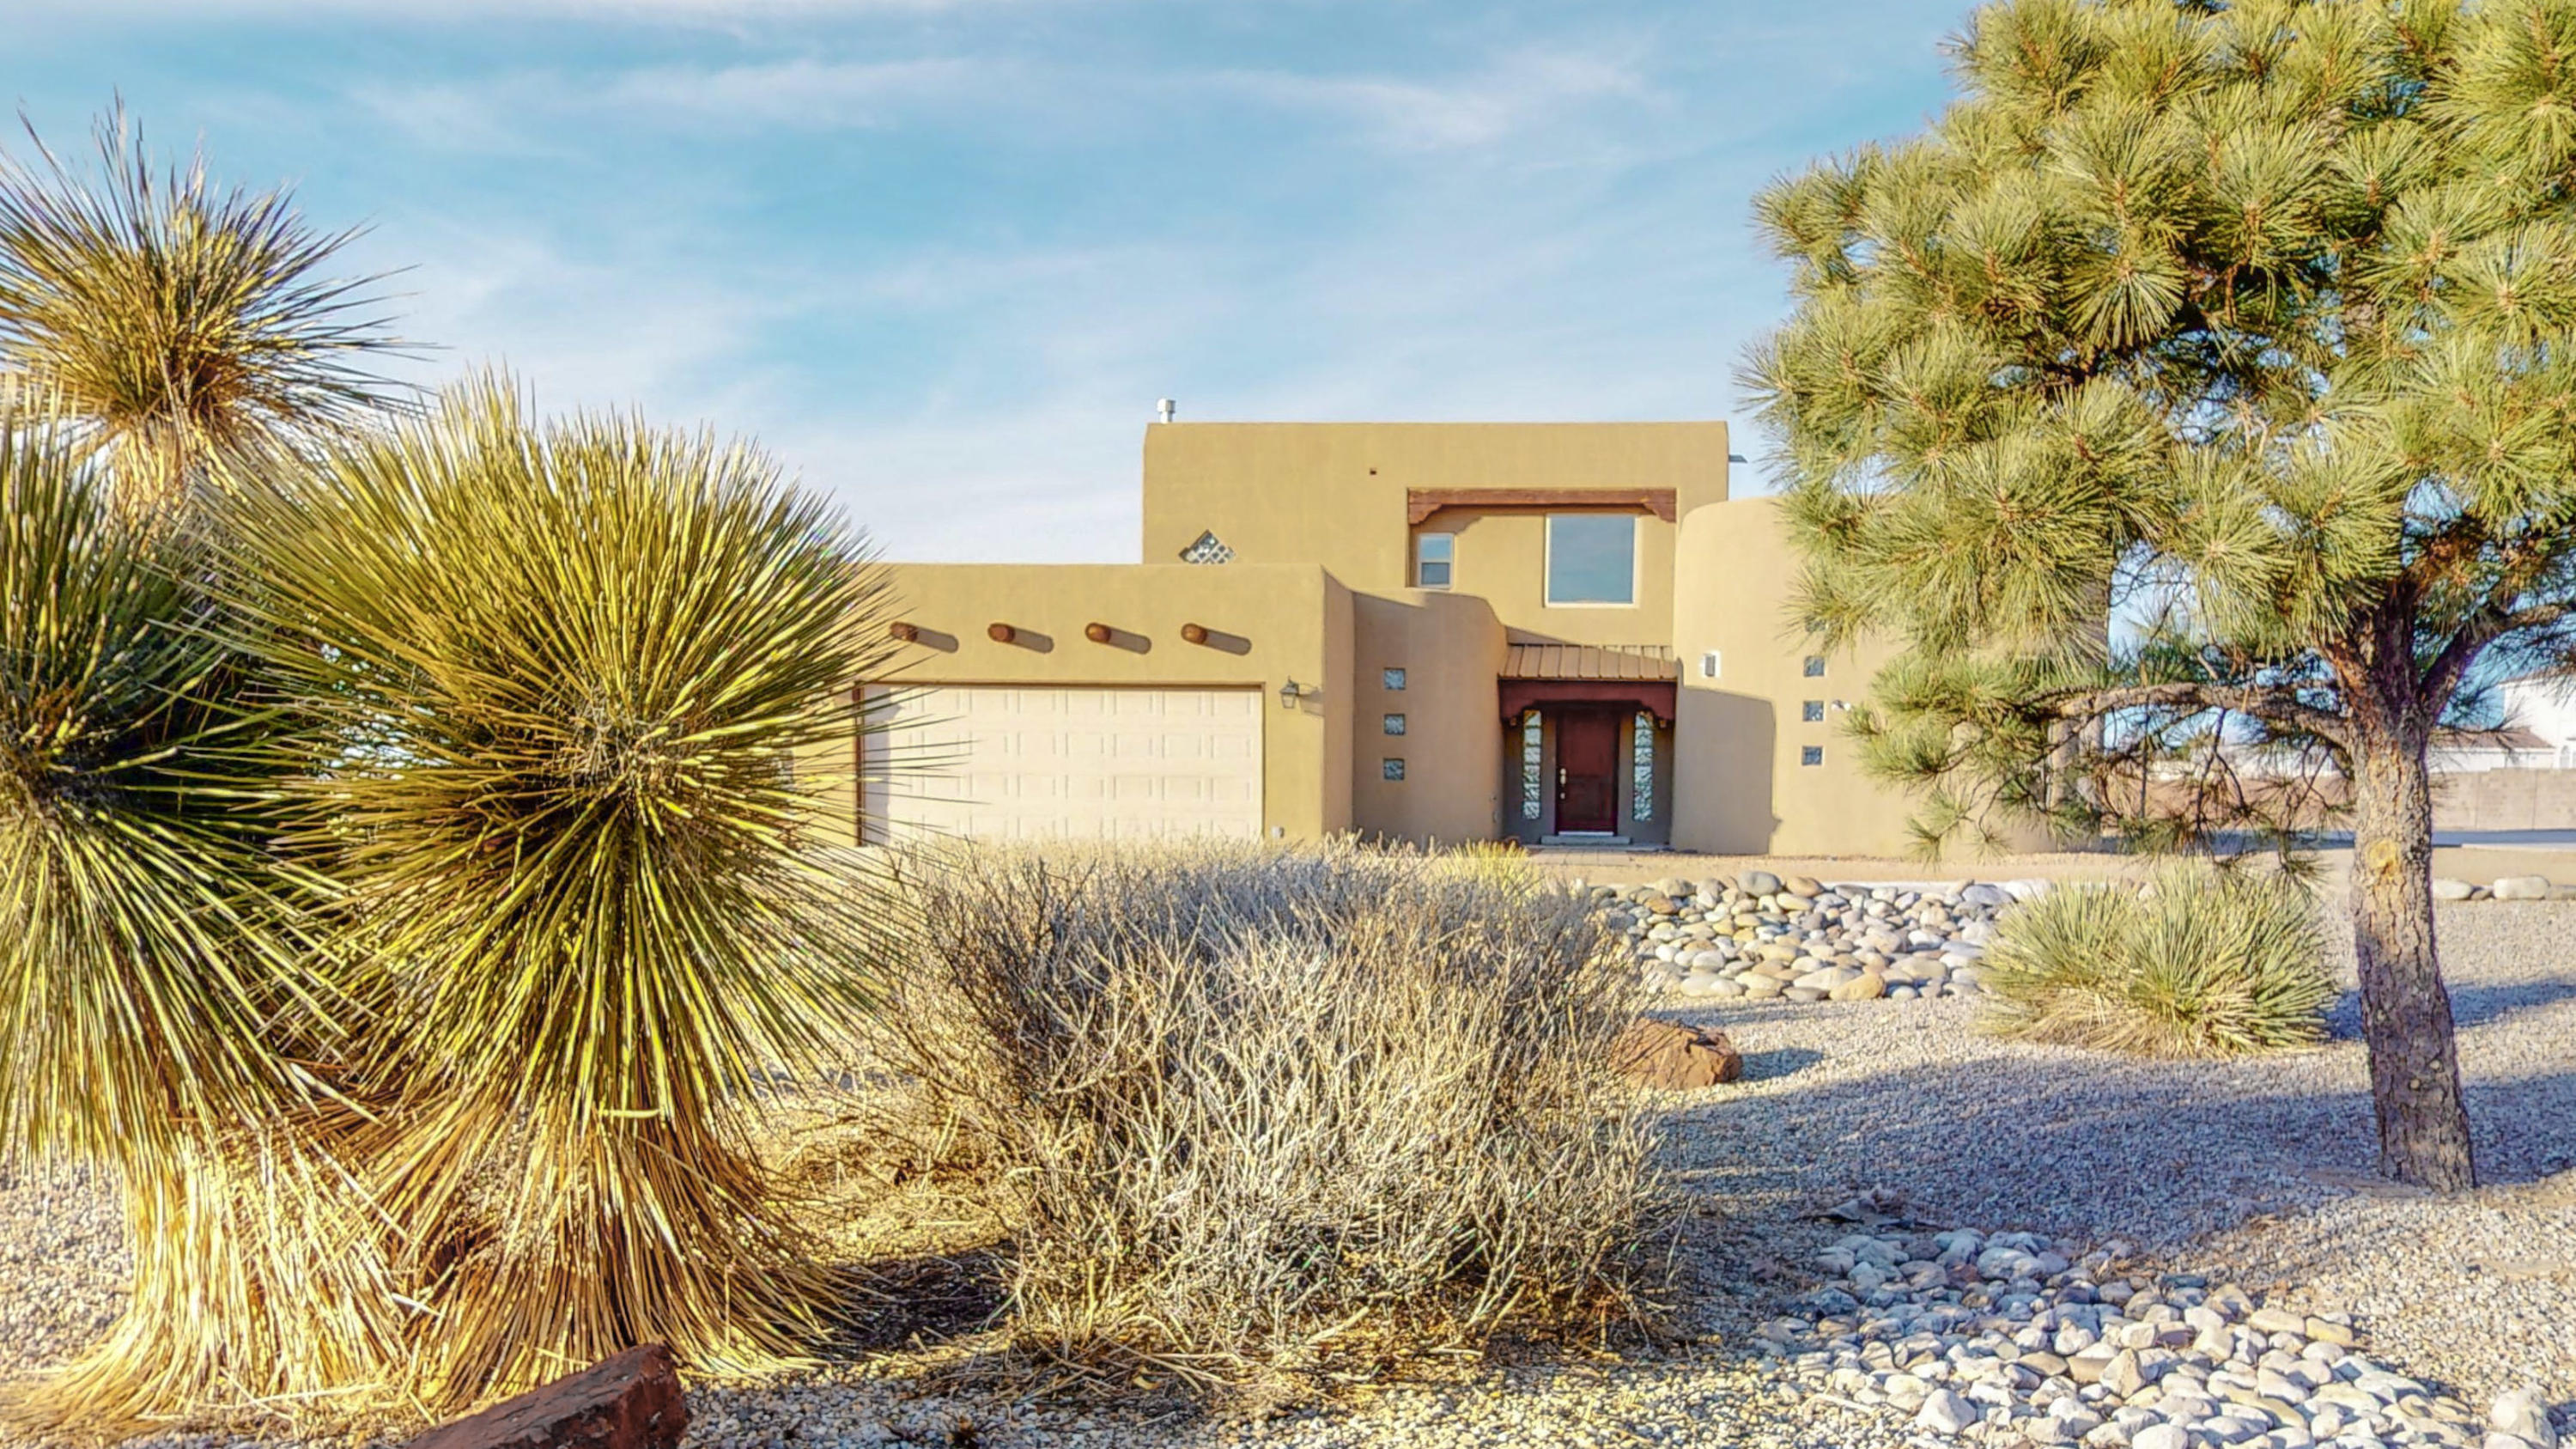 Looking for a great home in North Albuquerque Acres in  North Star/ Desert Ridge/ La Cueva School district?   Come see this 2624 sf 2 story Pueblo style home on .89 acres with 4 bedrooms, 3 baths, oversized 2 car garage & radiant heat.  Spacious , great room with high ceilings, wood laminate flooring, huge vigas & Sandia mountain views opens to dining room and kitchen.  Kitchen has a large walk in pantry, granite countertops and double door access to the covered patio .  House is on city water & city sewer and has a Vivint solar system for greener living. No HOA ! Big lot has a professionally installed, concrete, basketball court, a playground,  lots of room for a pool, RV parking or your other toys.   Come see it today!